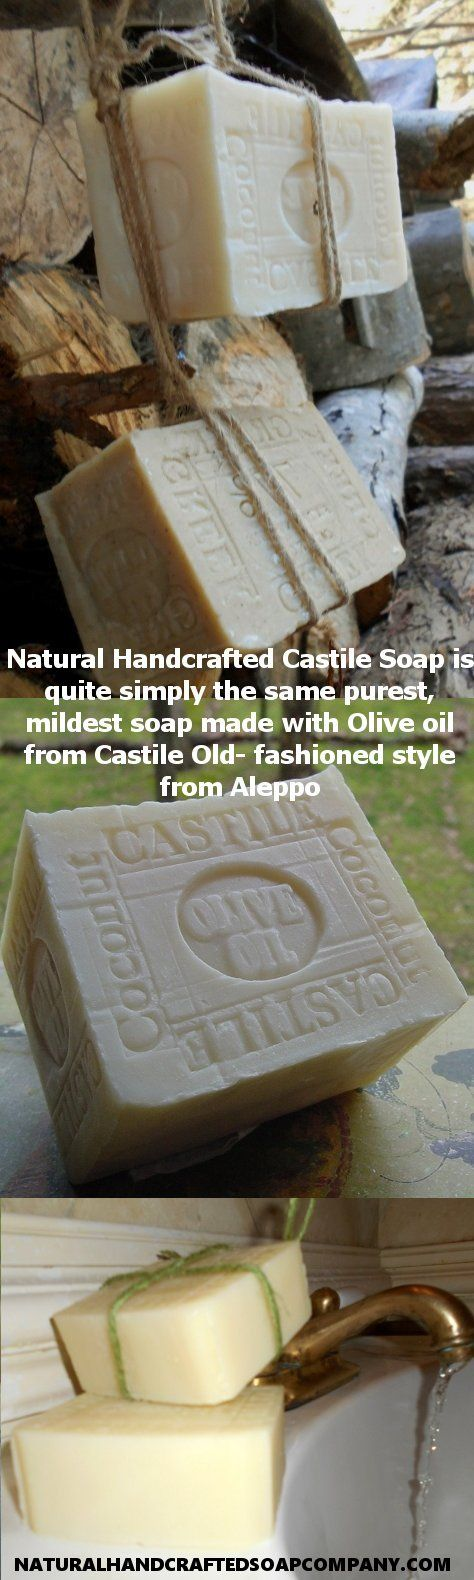 The origins of Castile Soap can be traced back to The Levant Where Aleppo Soap Makers Have Been Making Olive and Laurel Oil Based Soaps Natural Handcrafted Castile Soap is quite simply the same purest, mildest soap made with Olive oil from Castile Old- fashioned style from Aleppo